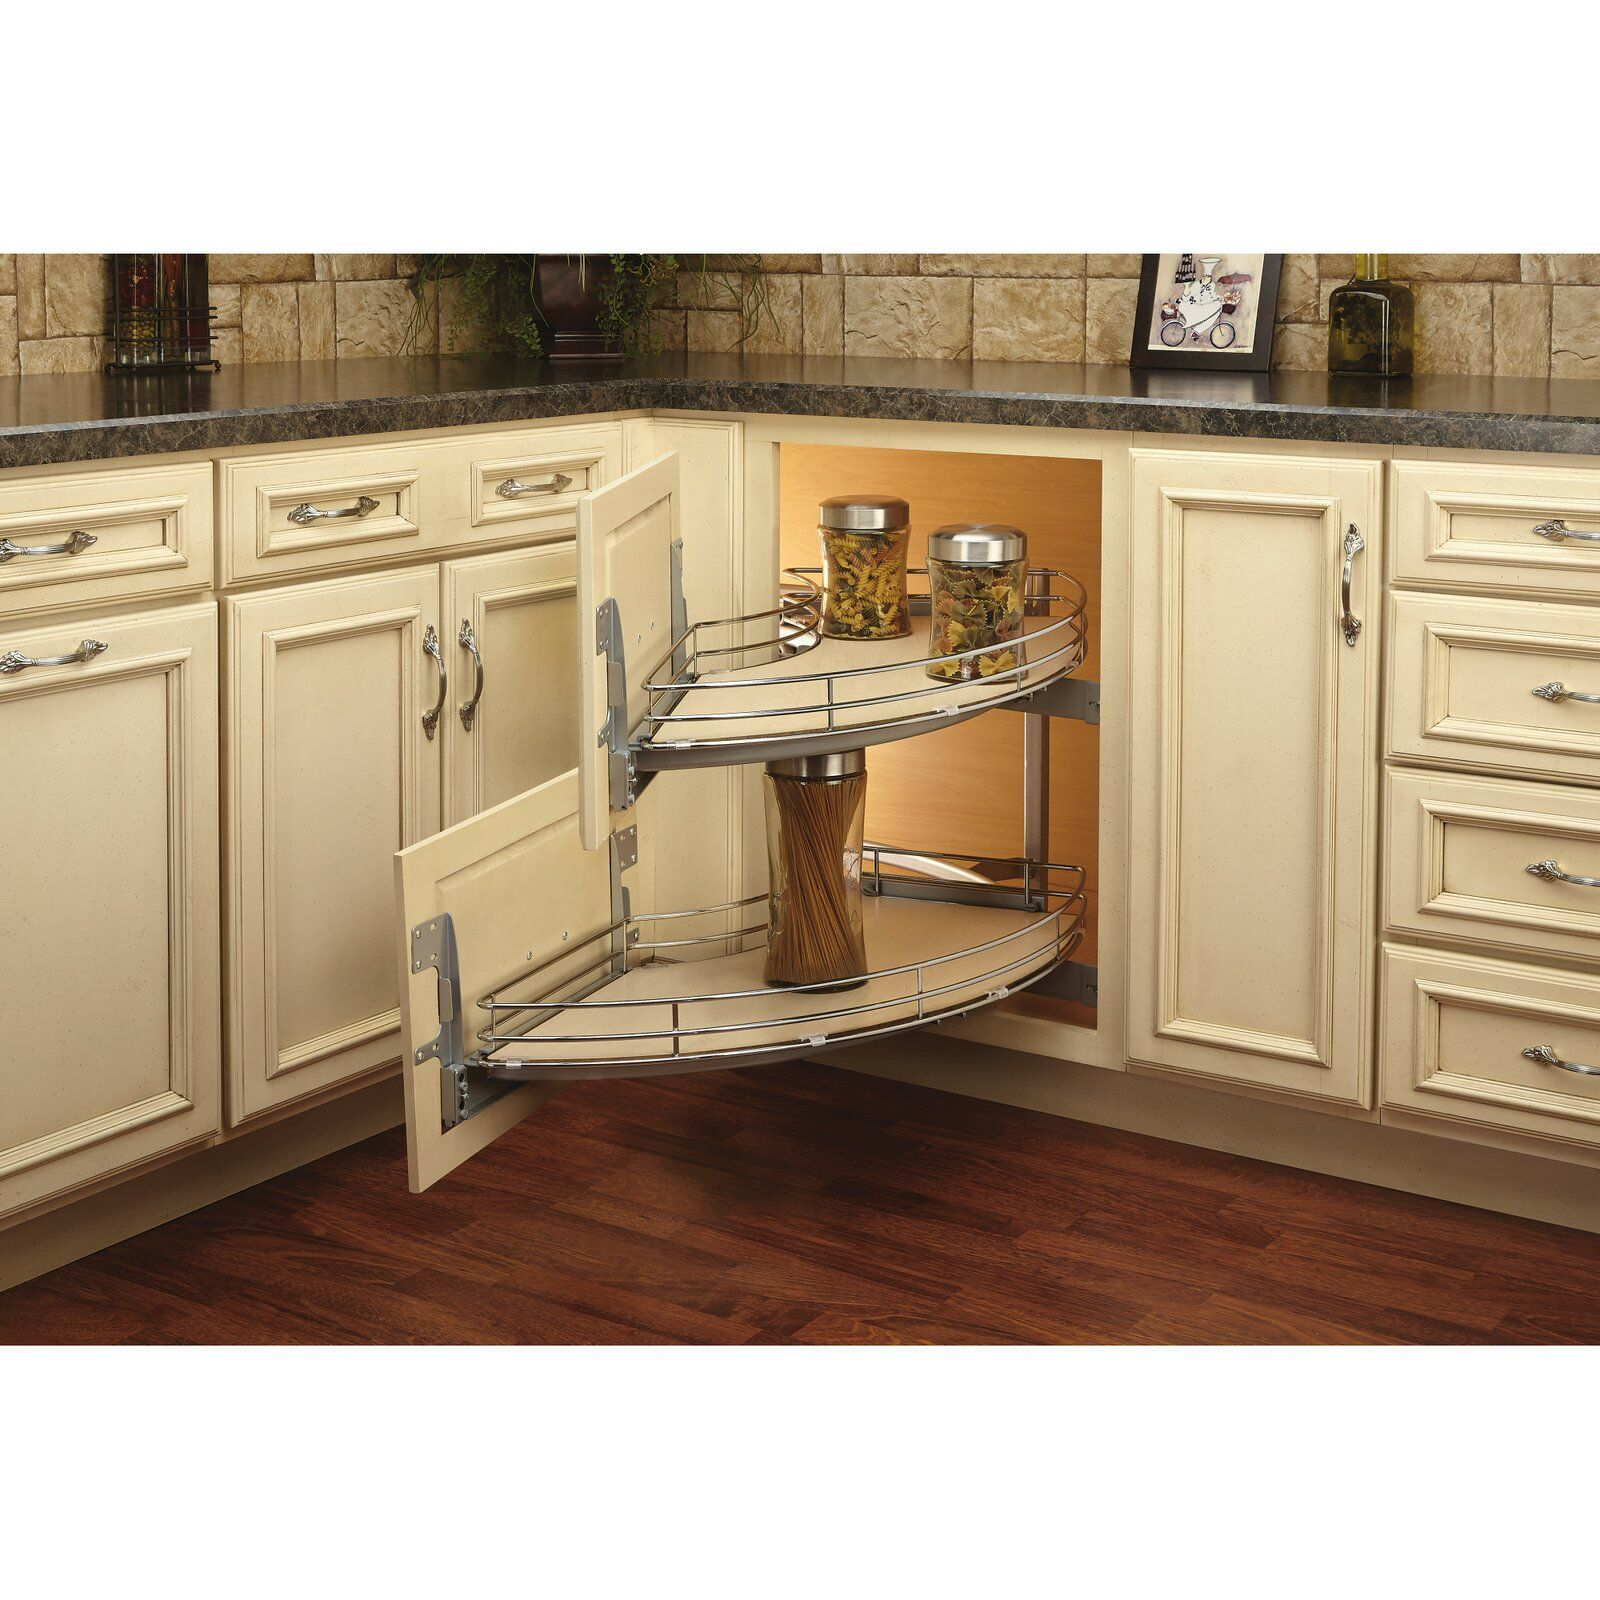 Curve 2 Tier Right-Handed Blind Corner Cabinet Organizer ...